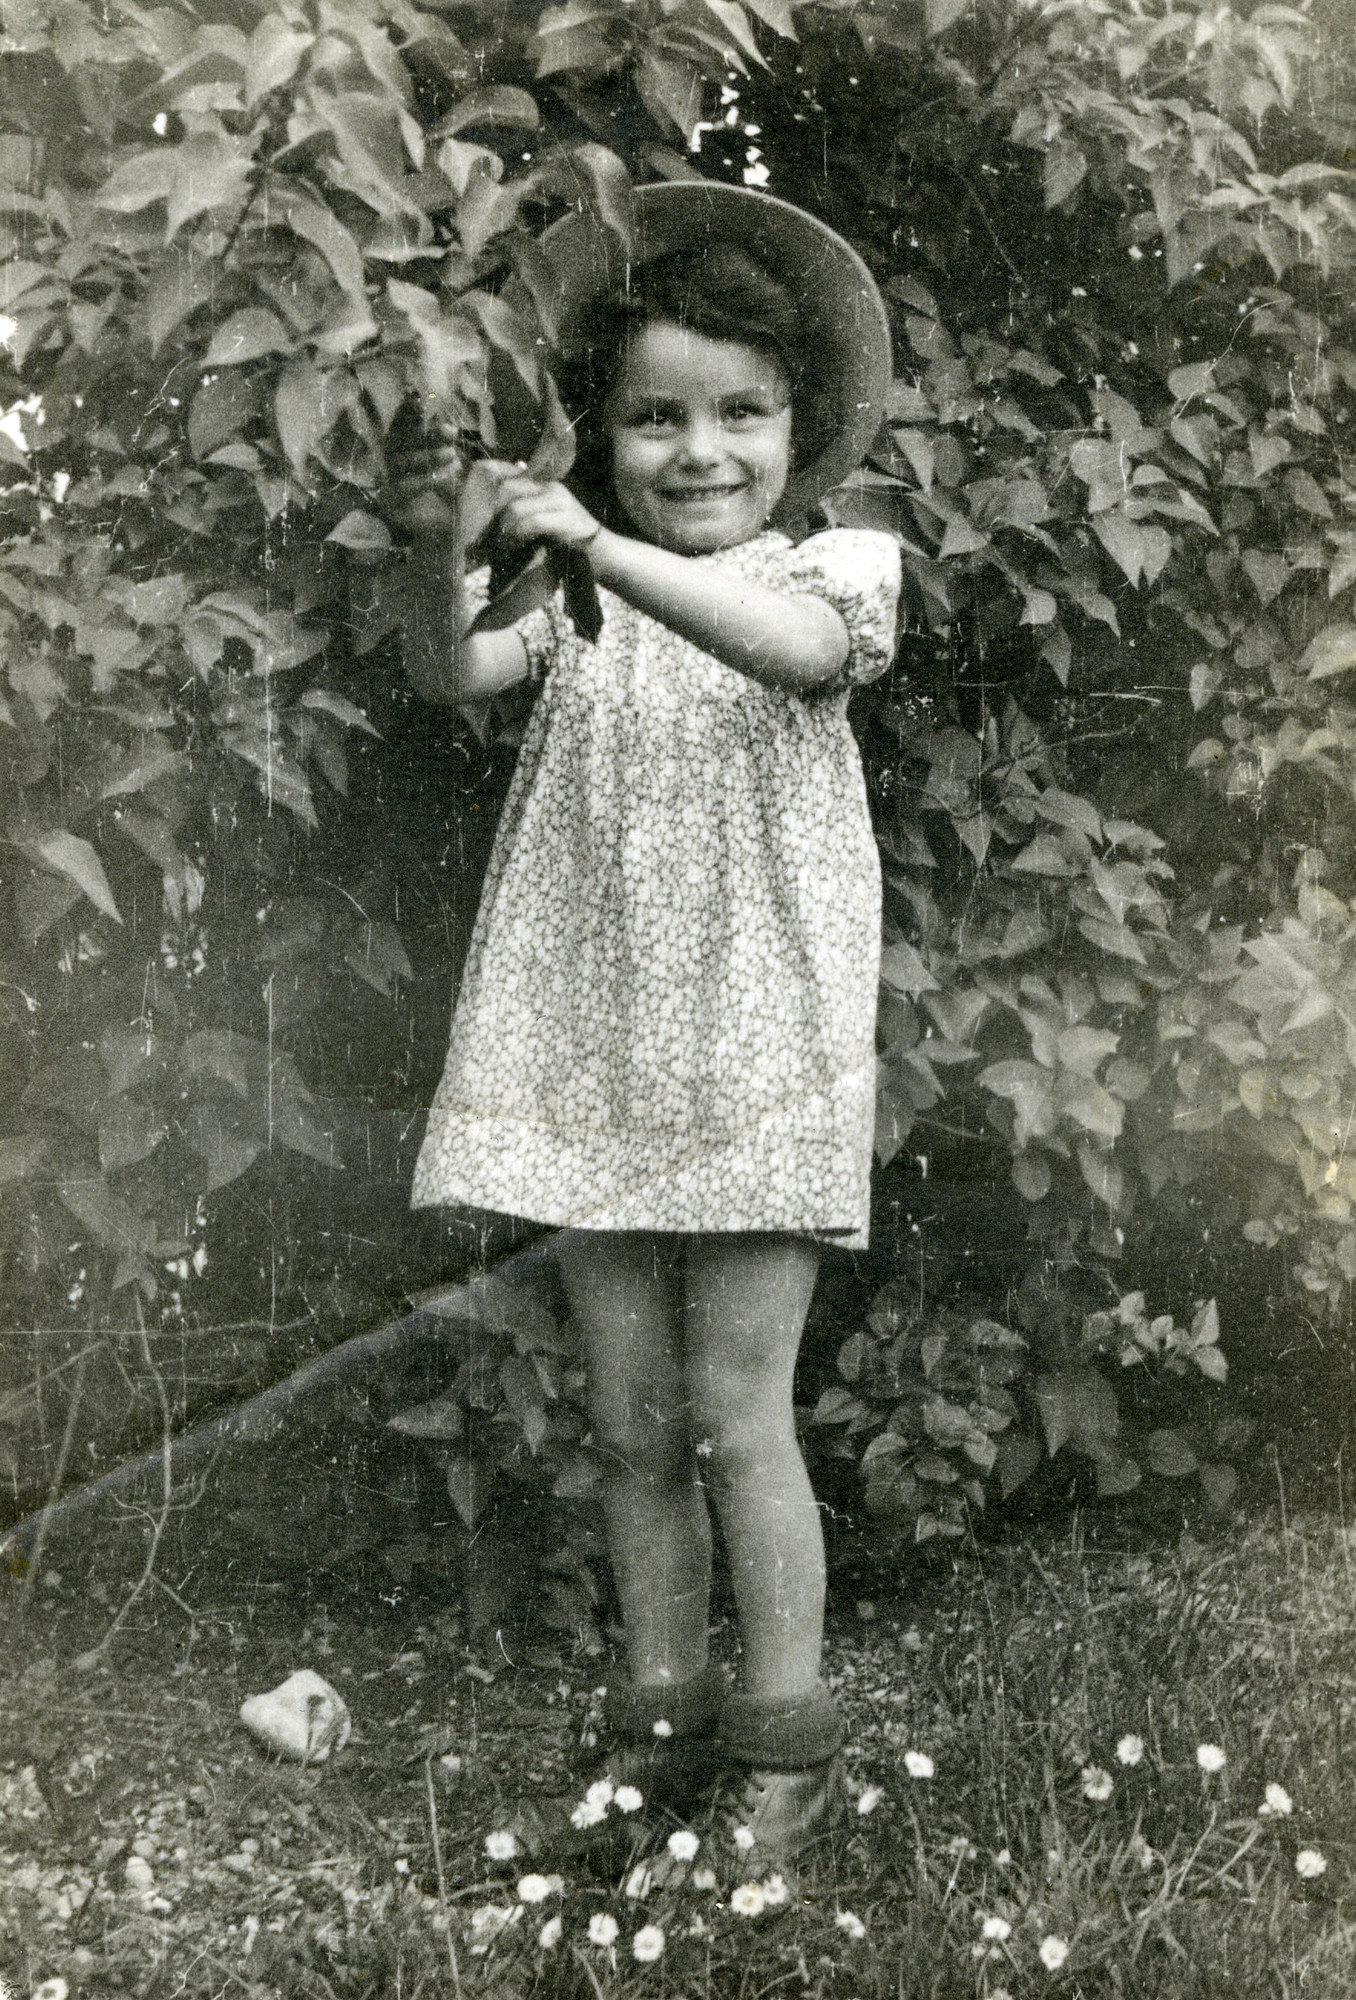 Basia Szrajer stands in a garden, probably in the Neu Freimann displaced persons camp.